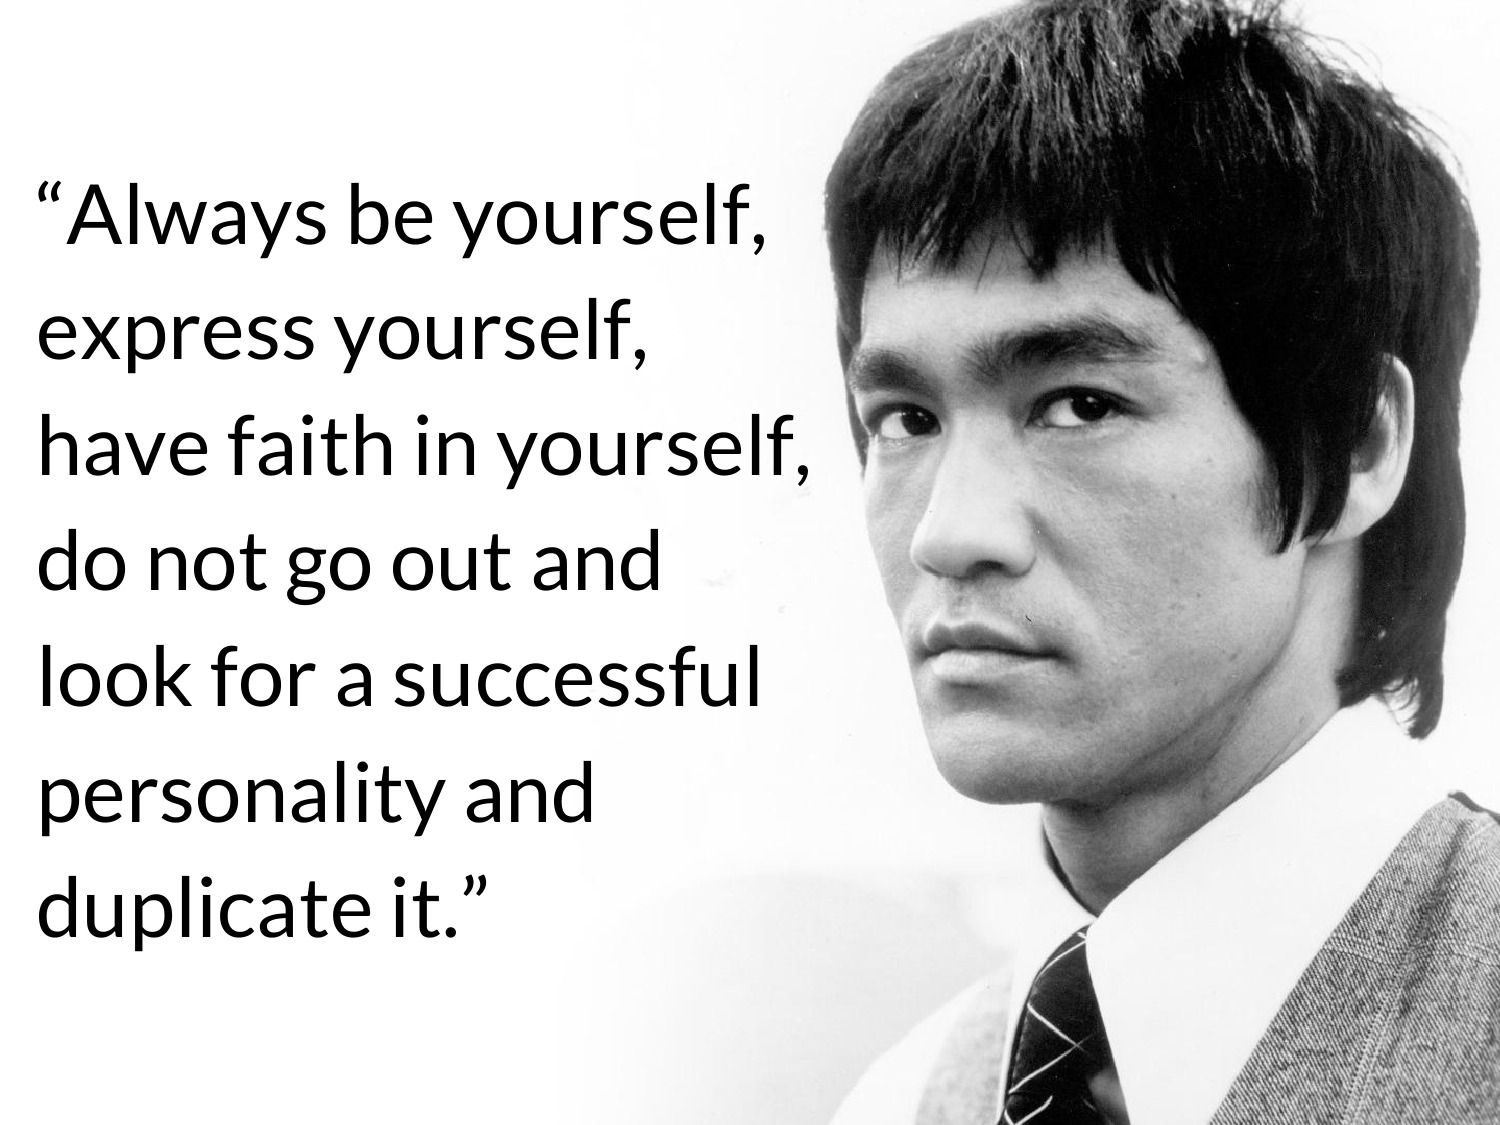 Connu Quote of Bruce Lee | QuoteSaga JR57